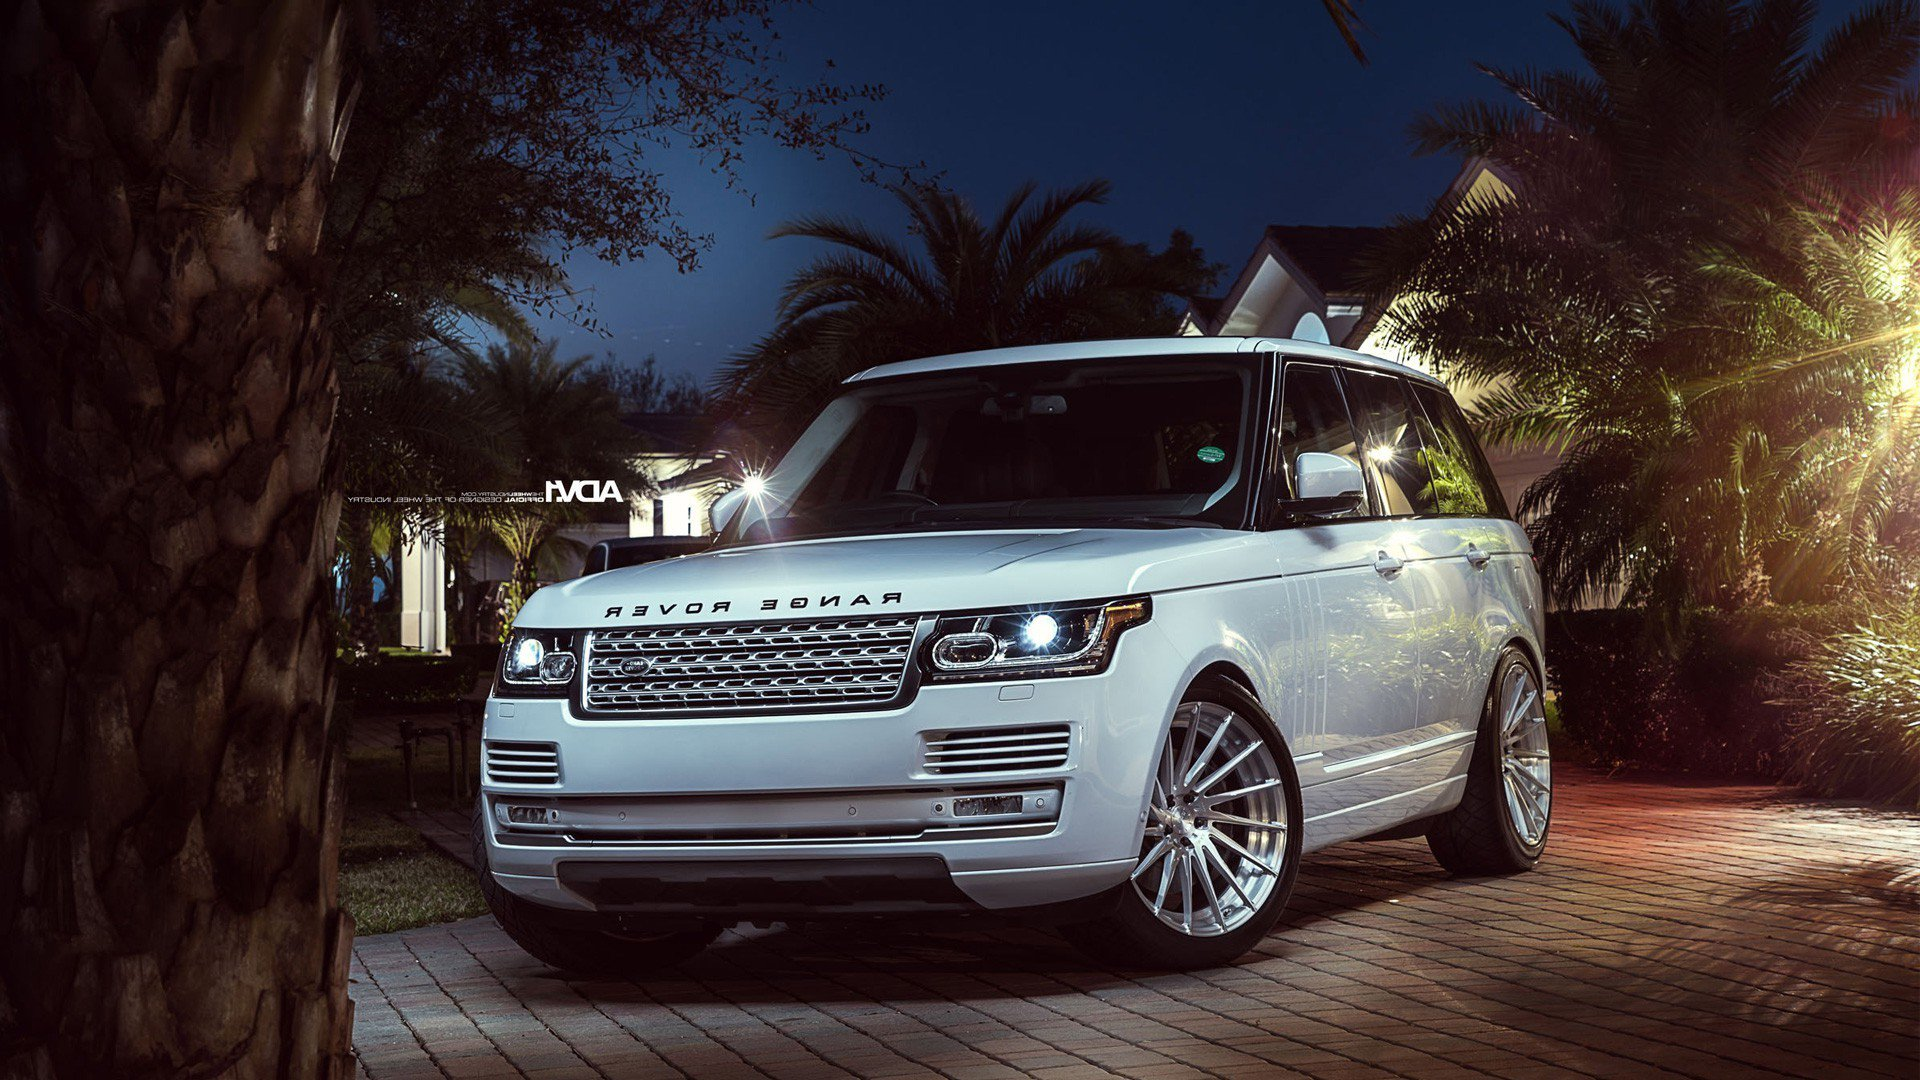 Very Cute Wallpapers For Mobile 240x320 1920x1080 Range Rover Laptop Full Hd 1080p Hd 4k